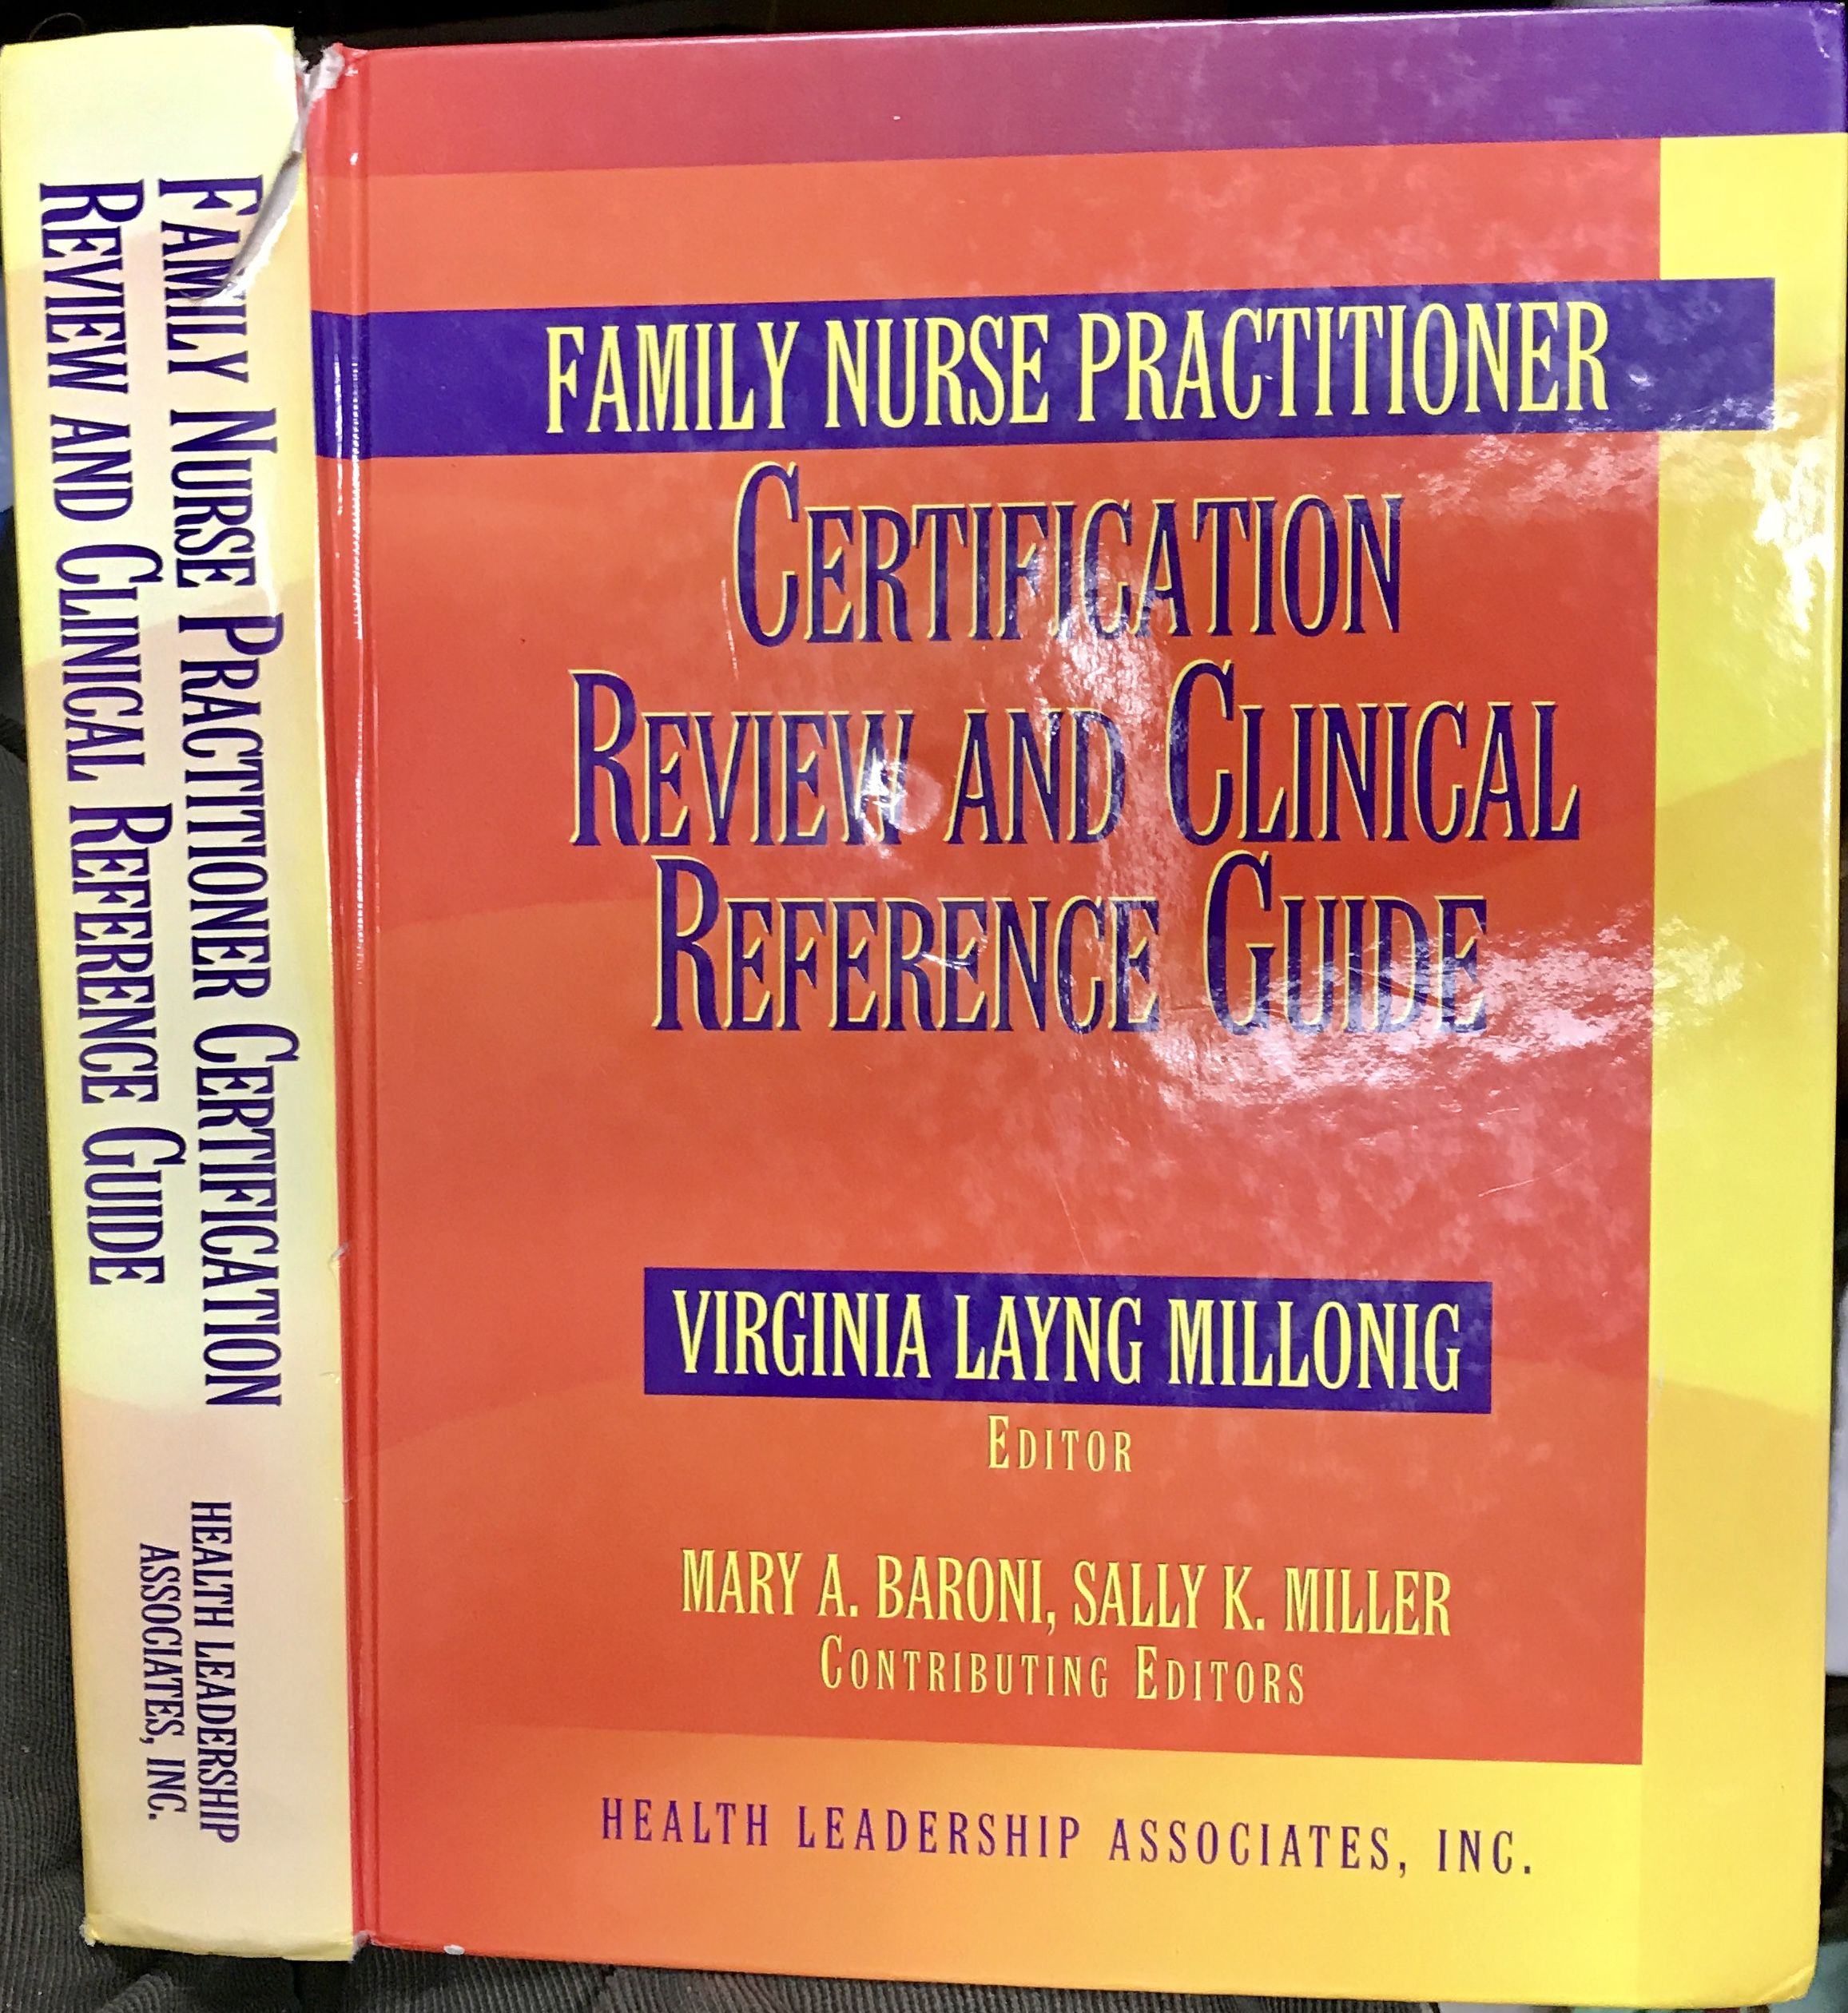 Family Nurse Practitioner Certification Review And Clinical